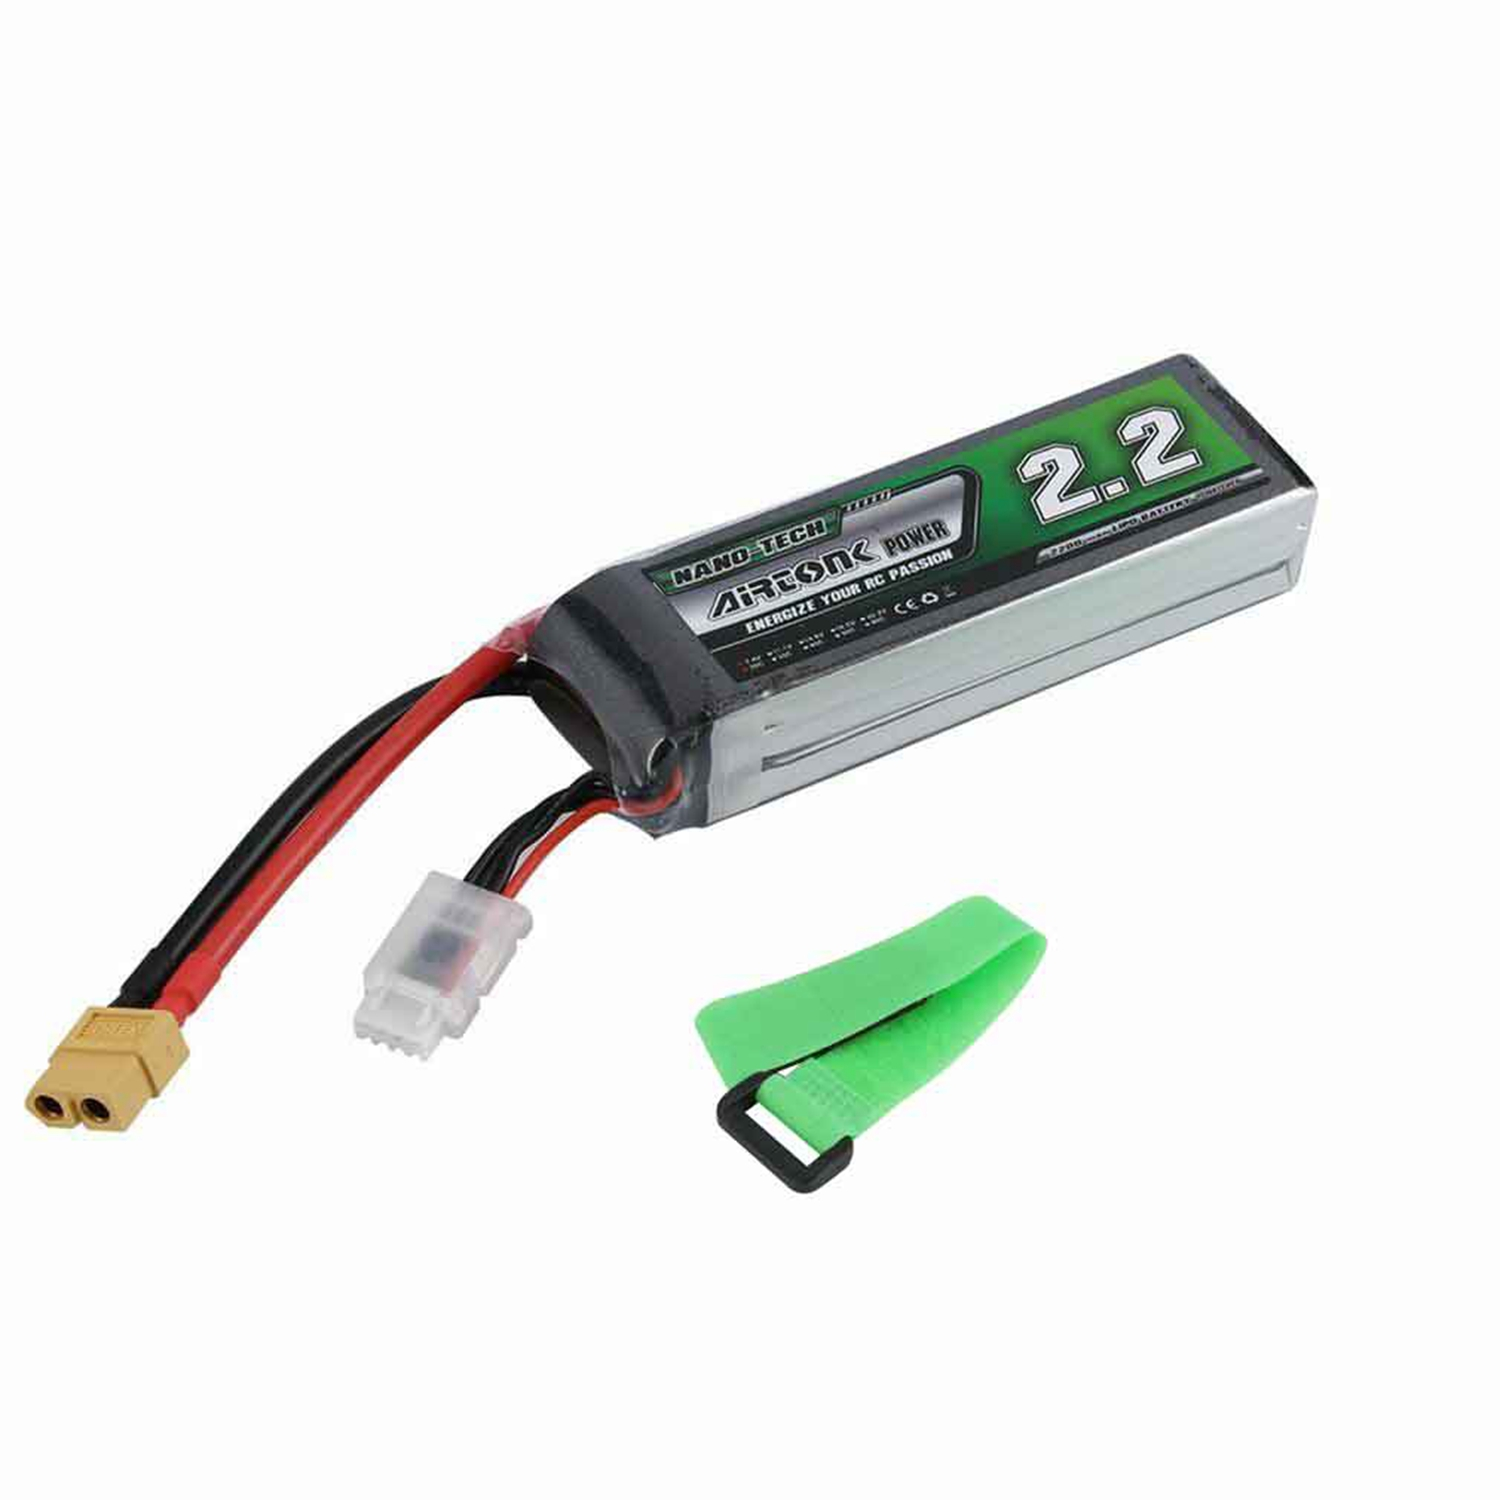 Airtonk Power 11.1V <font><b>2200Mah</b></font> 30C <font><b>3S</b></font> 1P <font><b>Lipo</b></font> Battery Xt60 Plug For Rc Drone Car, Helicopter, Car, Boat Quality Batteries image